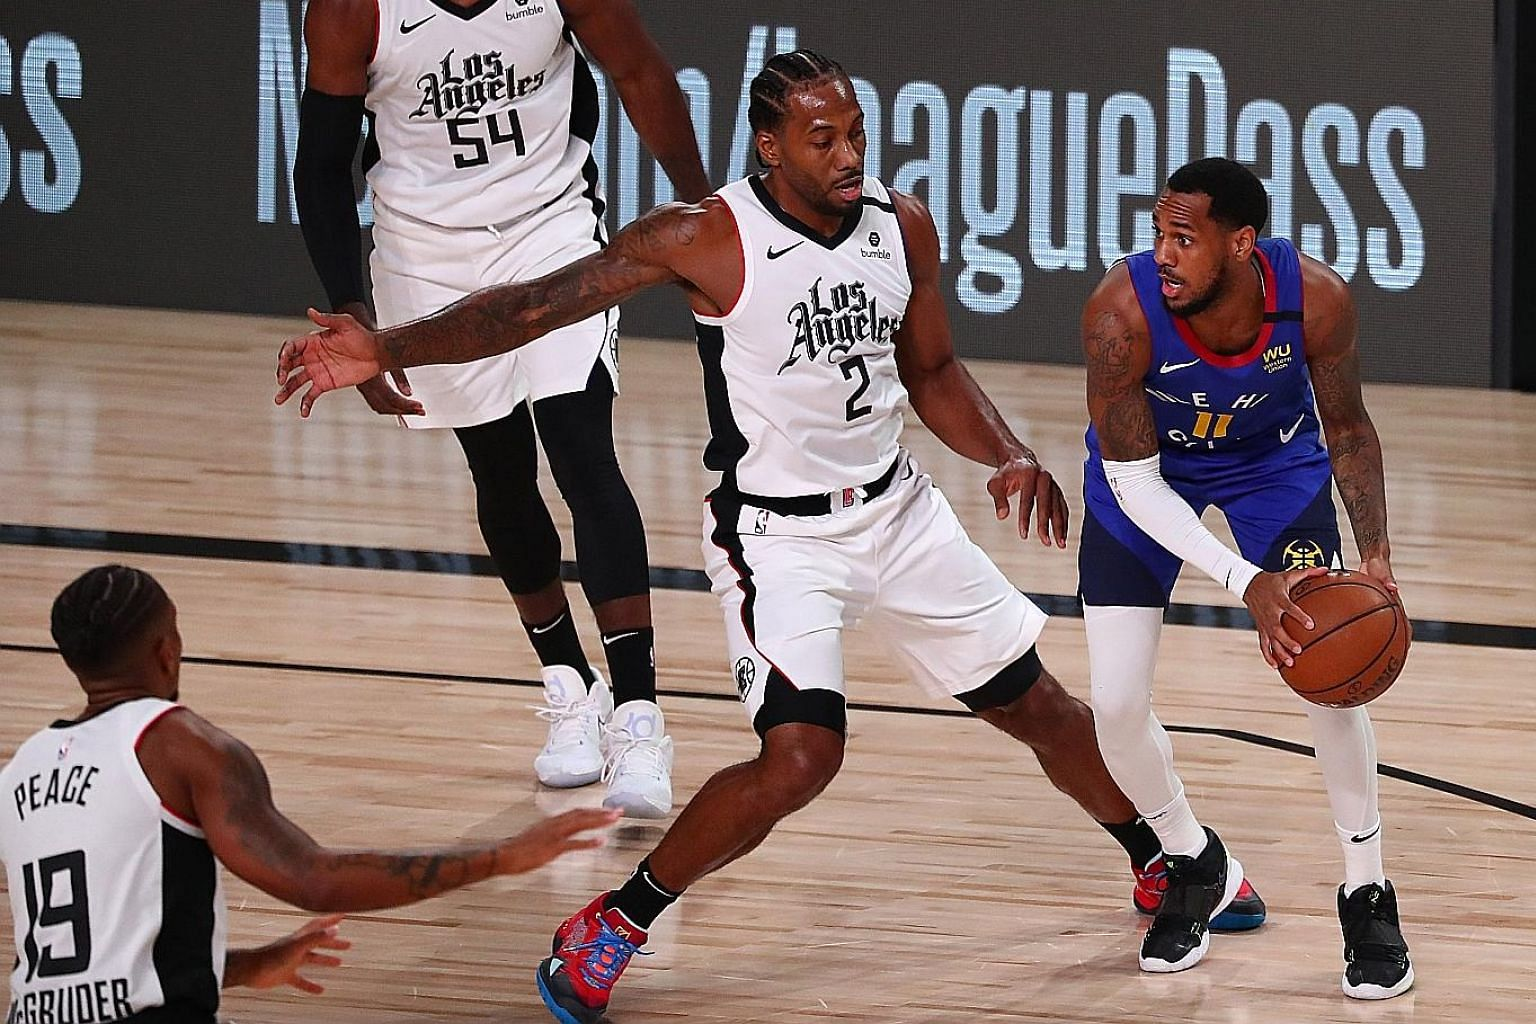 Denver Nuggets guard Monte Morris (extreme right) comes up against LA Clippers forward Kawhi Leonard at the AdventHealth Arena on Wednesday. The Clippers secured the second seed in the Western Conference with their 124-111 win over the Nuggets.